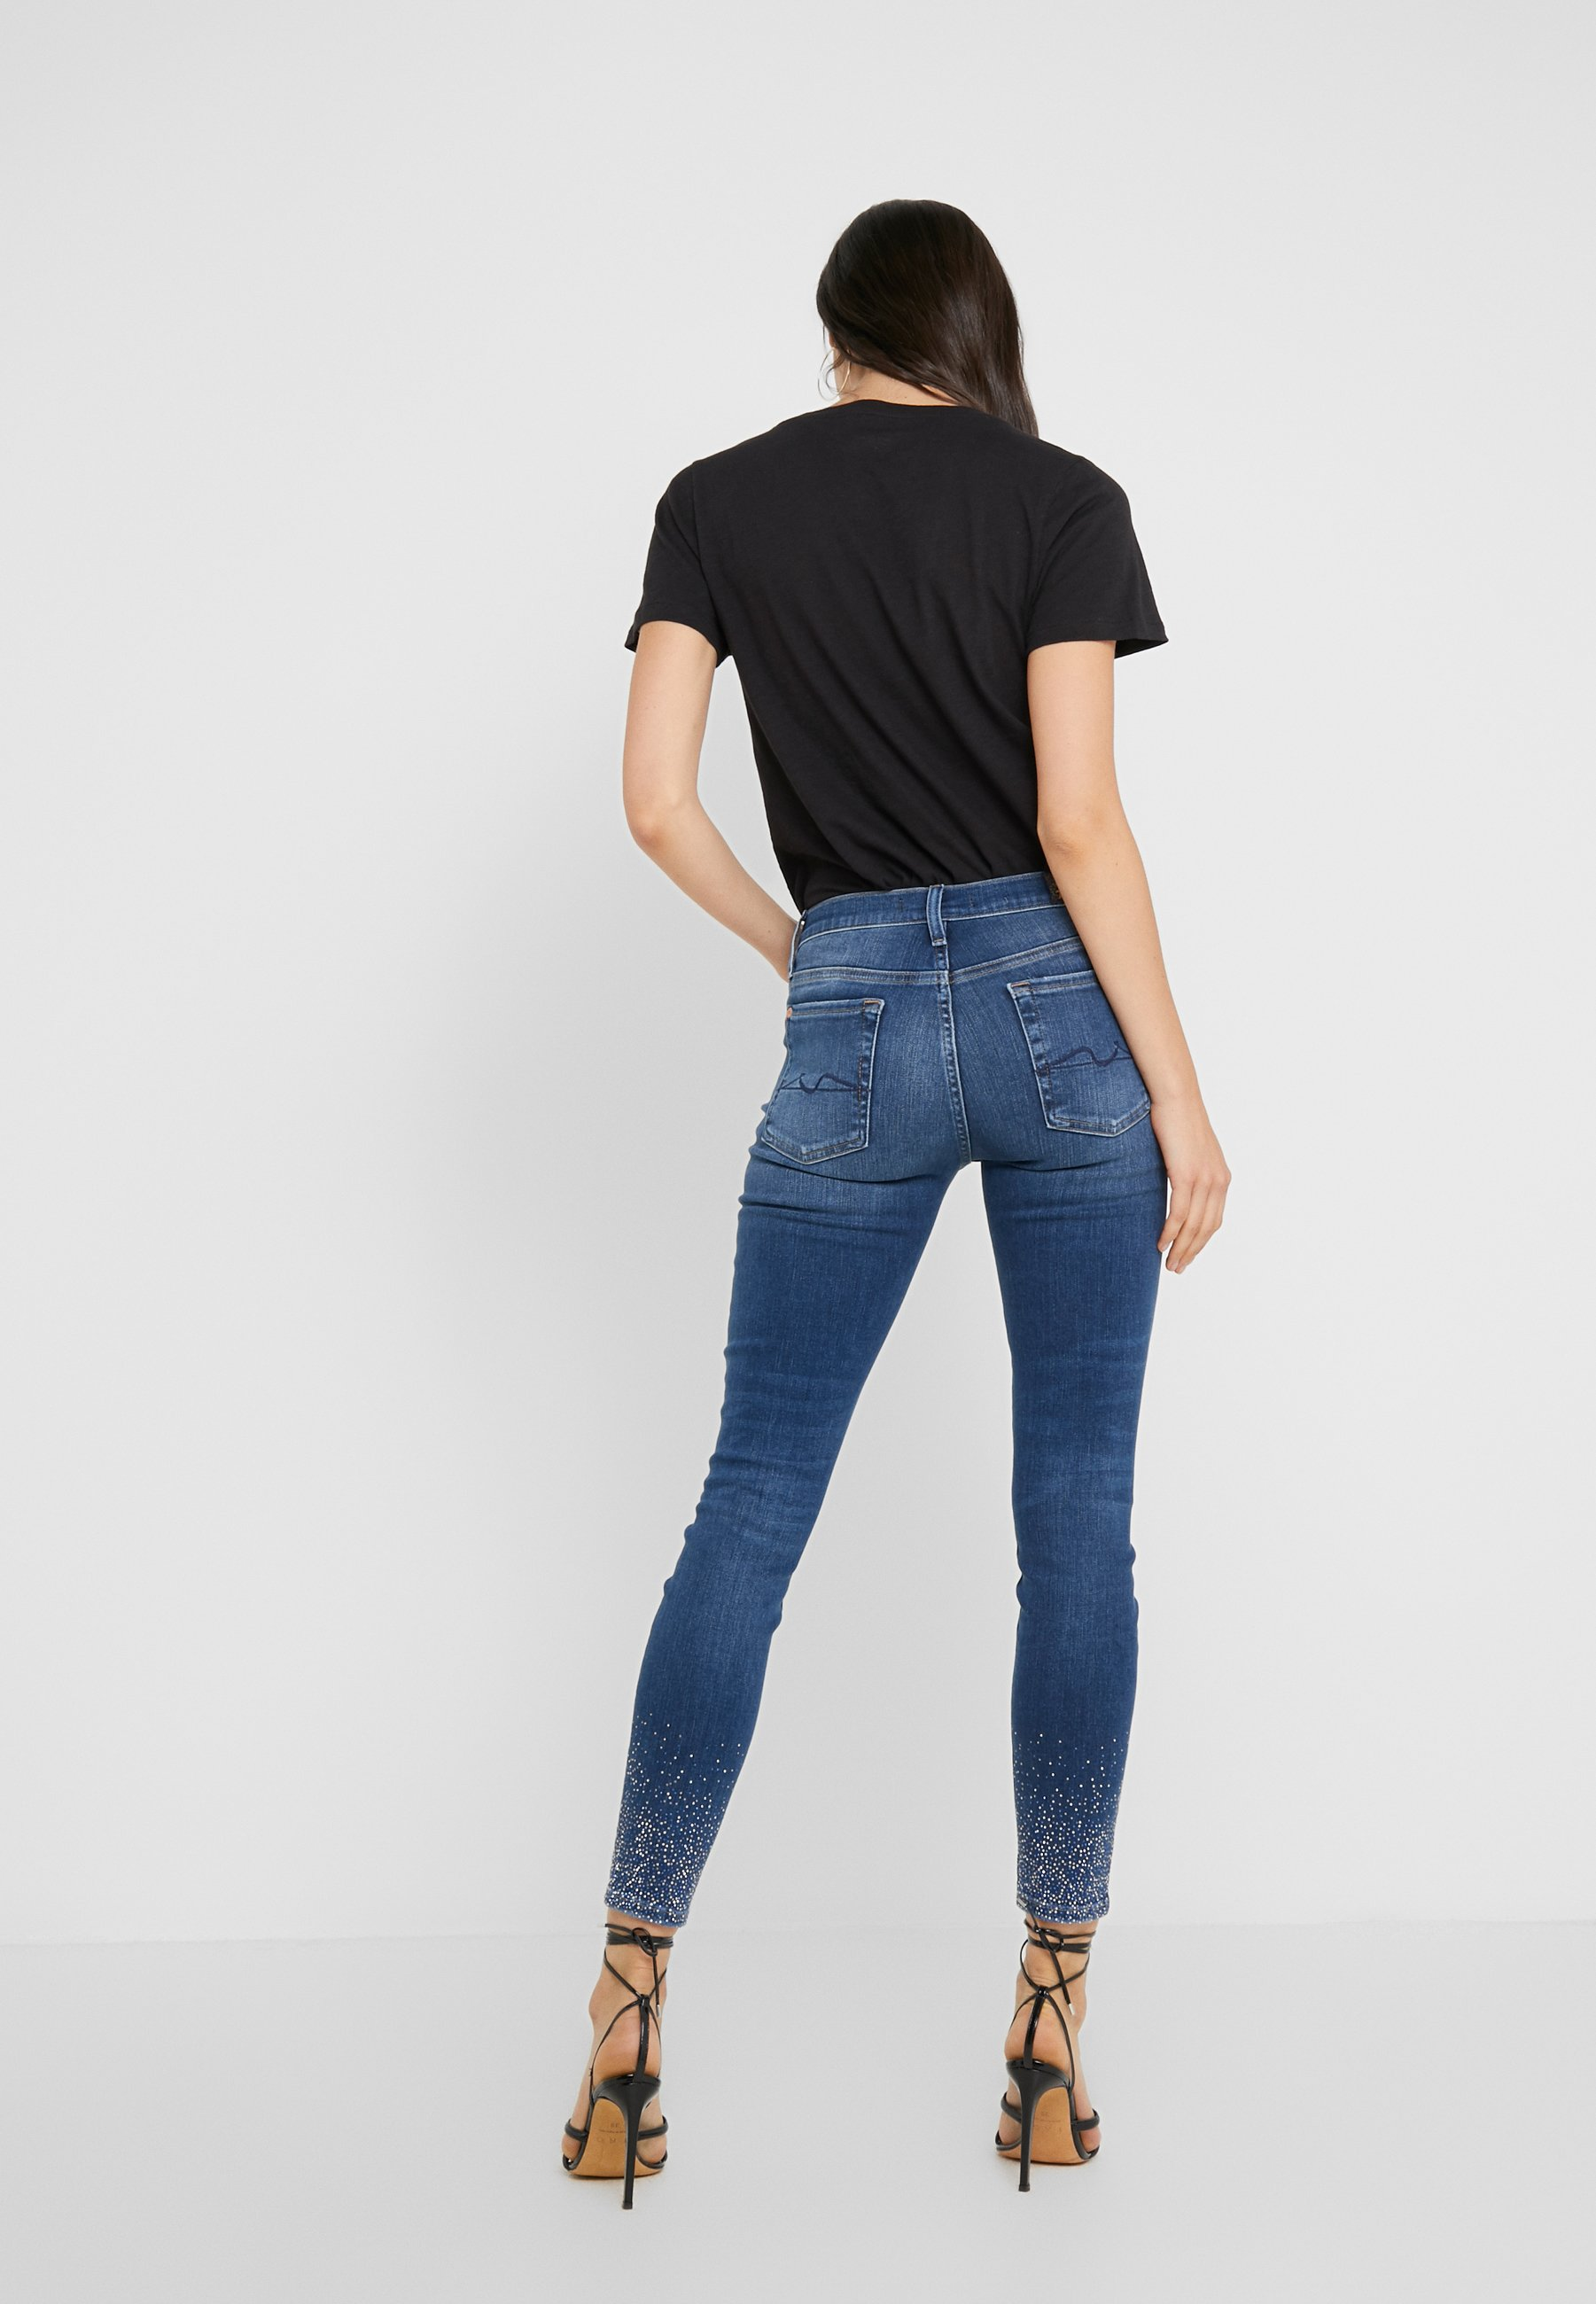 Illusion All With 7 Blue Crystal For HemJeans Mankind Denim Old Skinny Song hsQCdtr